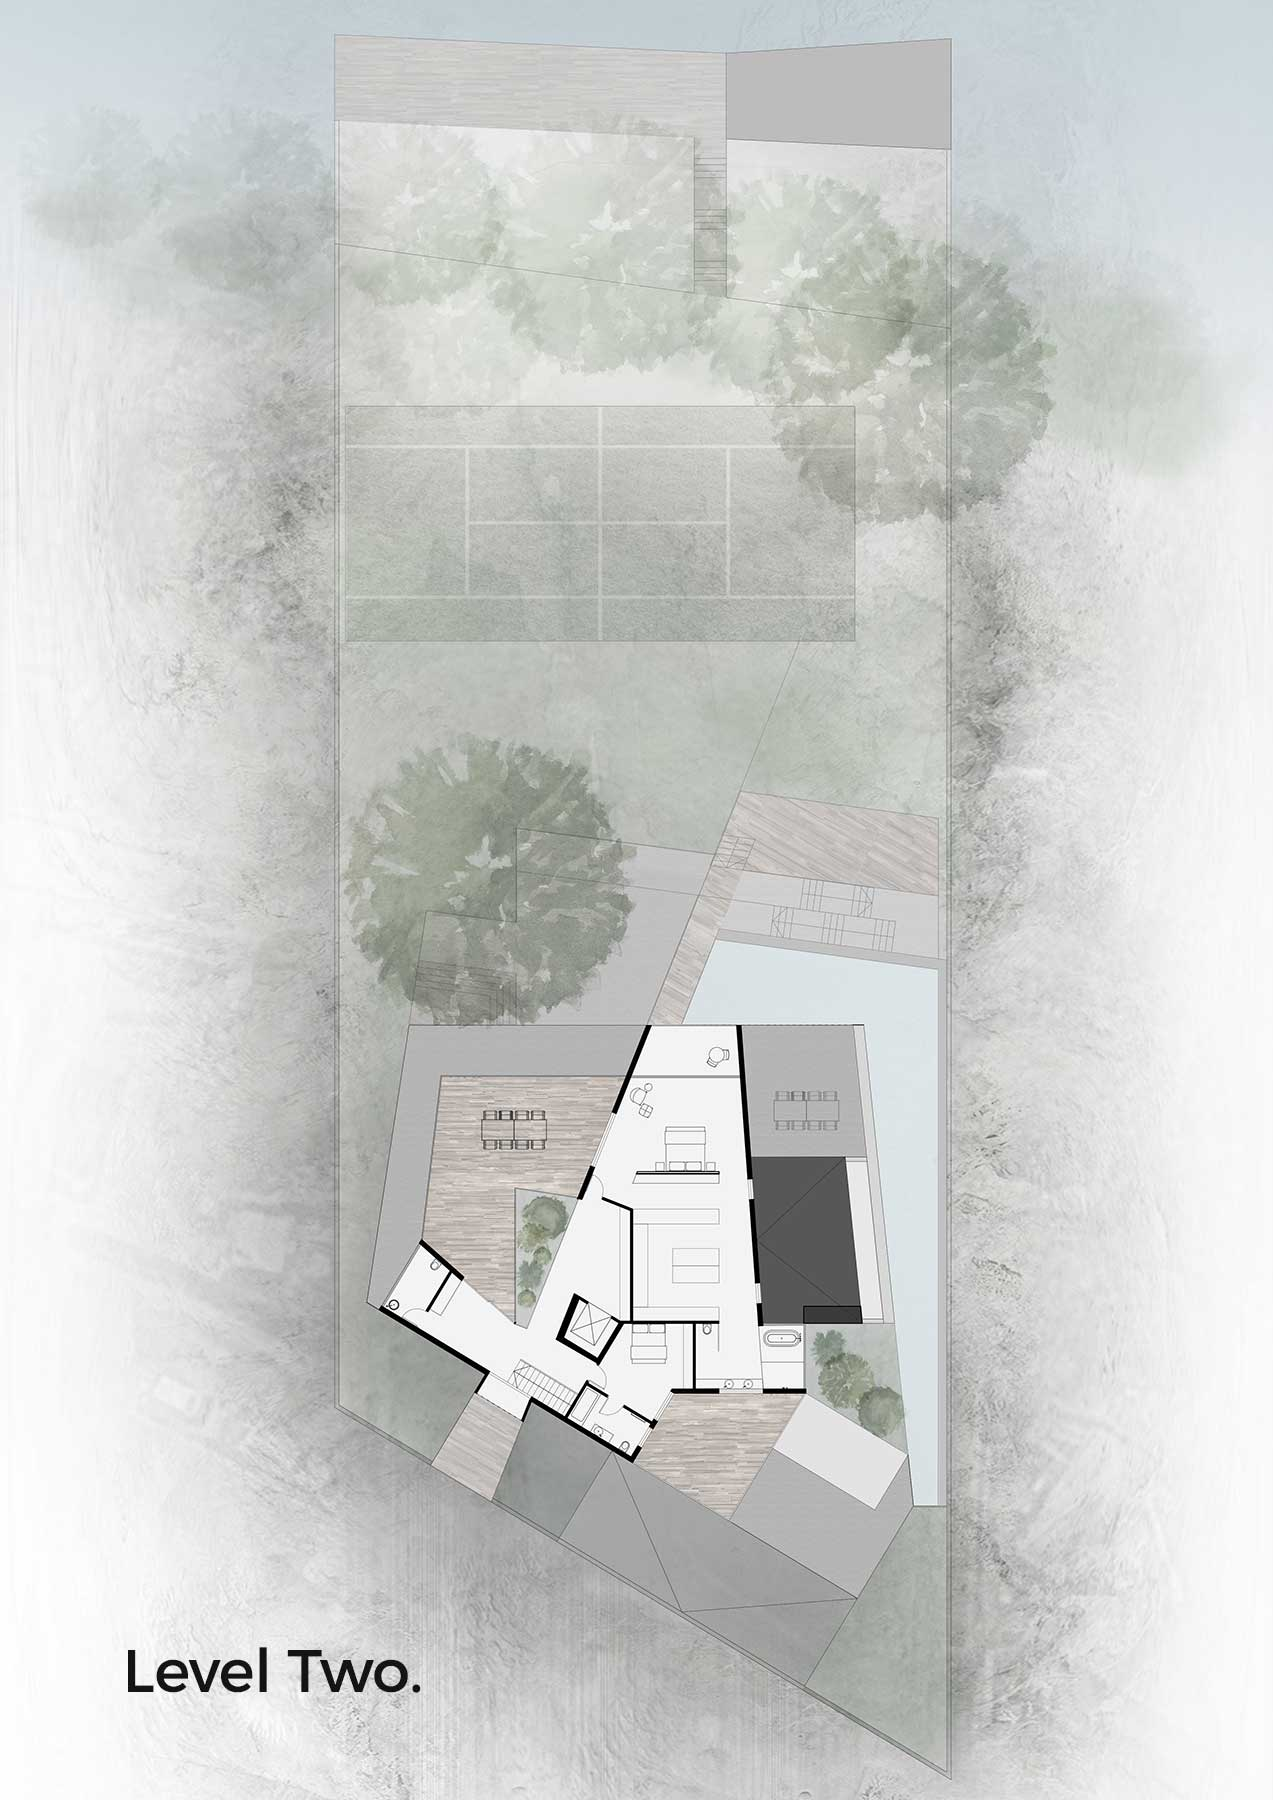 H2 (House Two) Floor Plan - architecture by Studio Y.